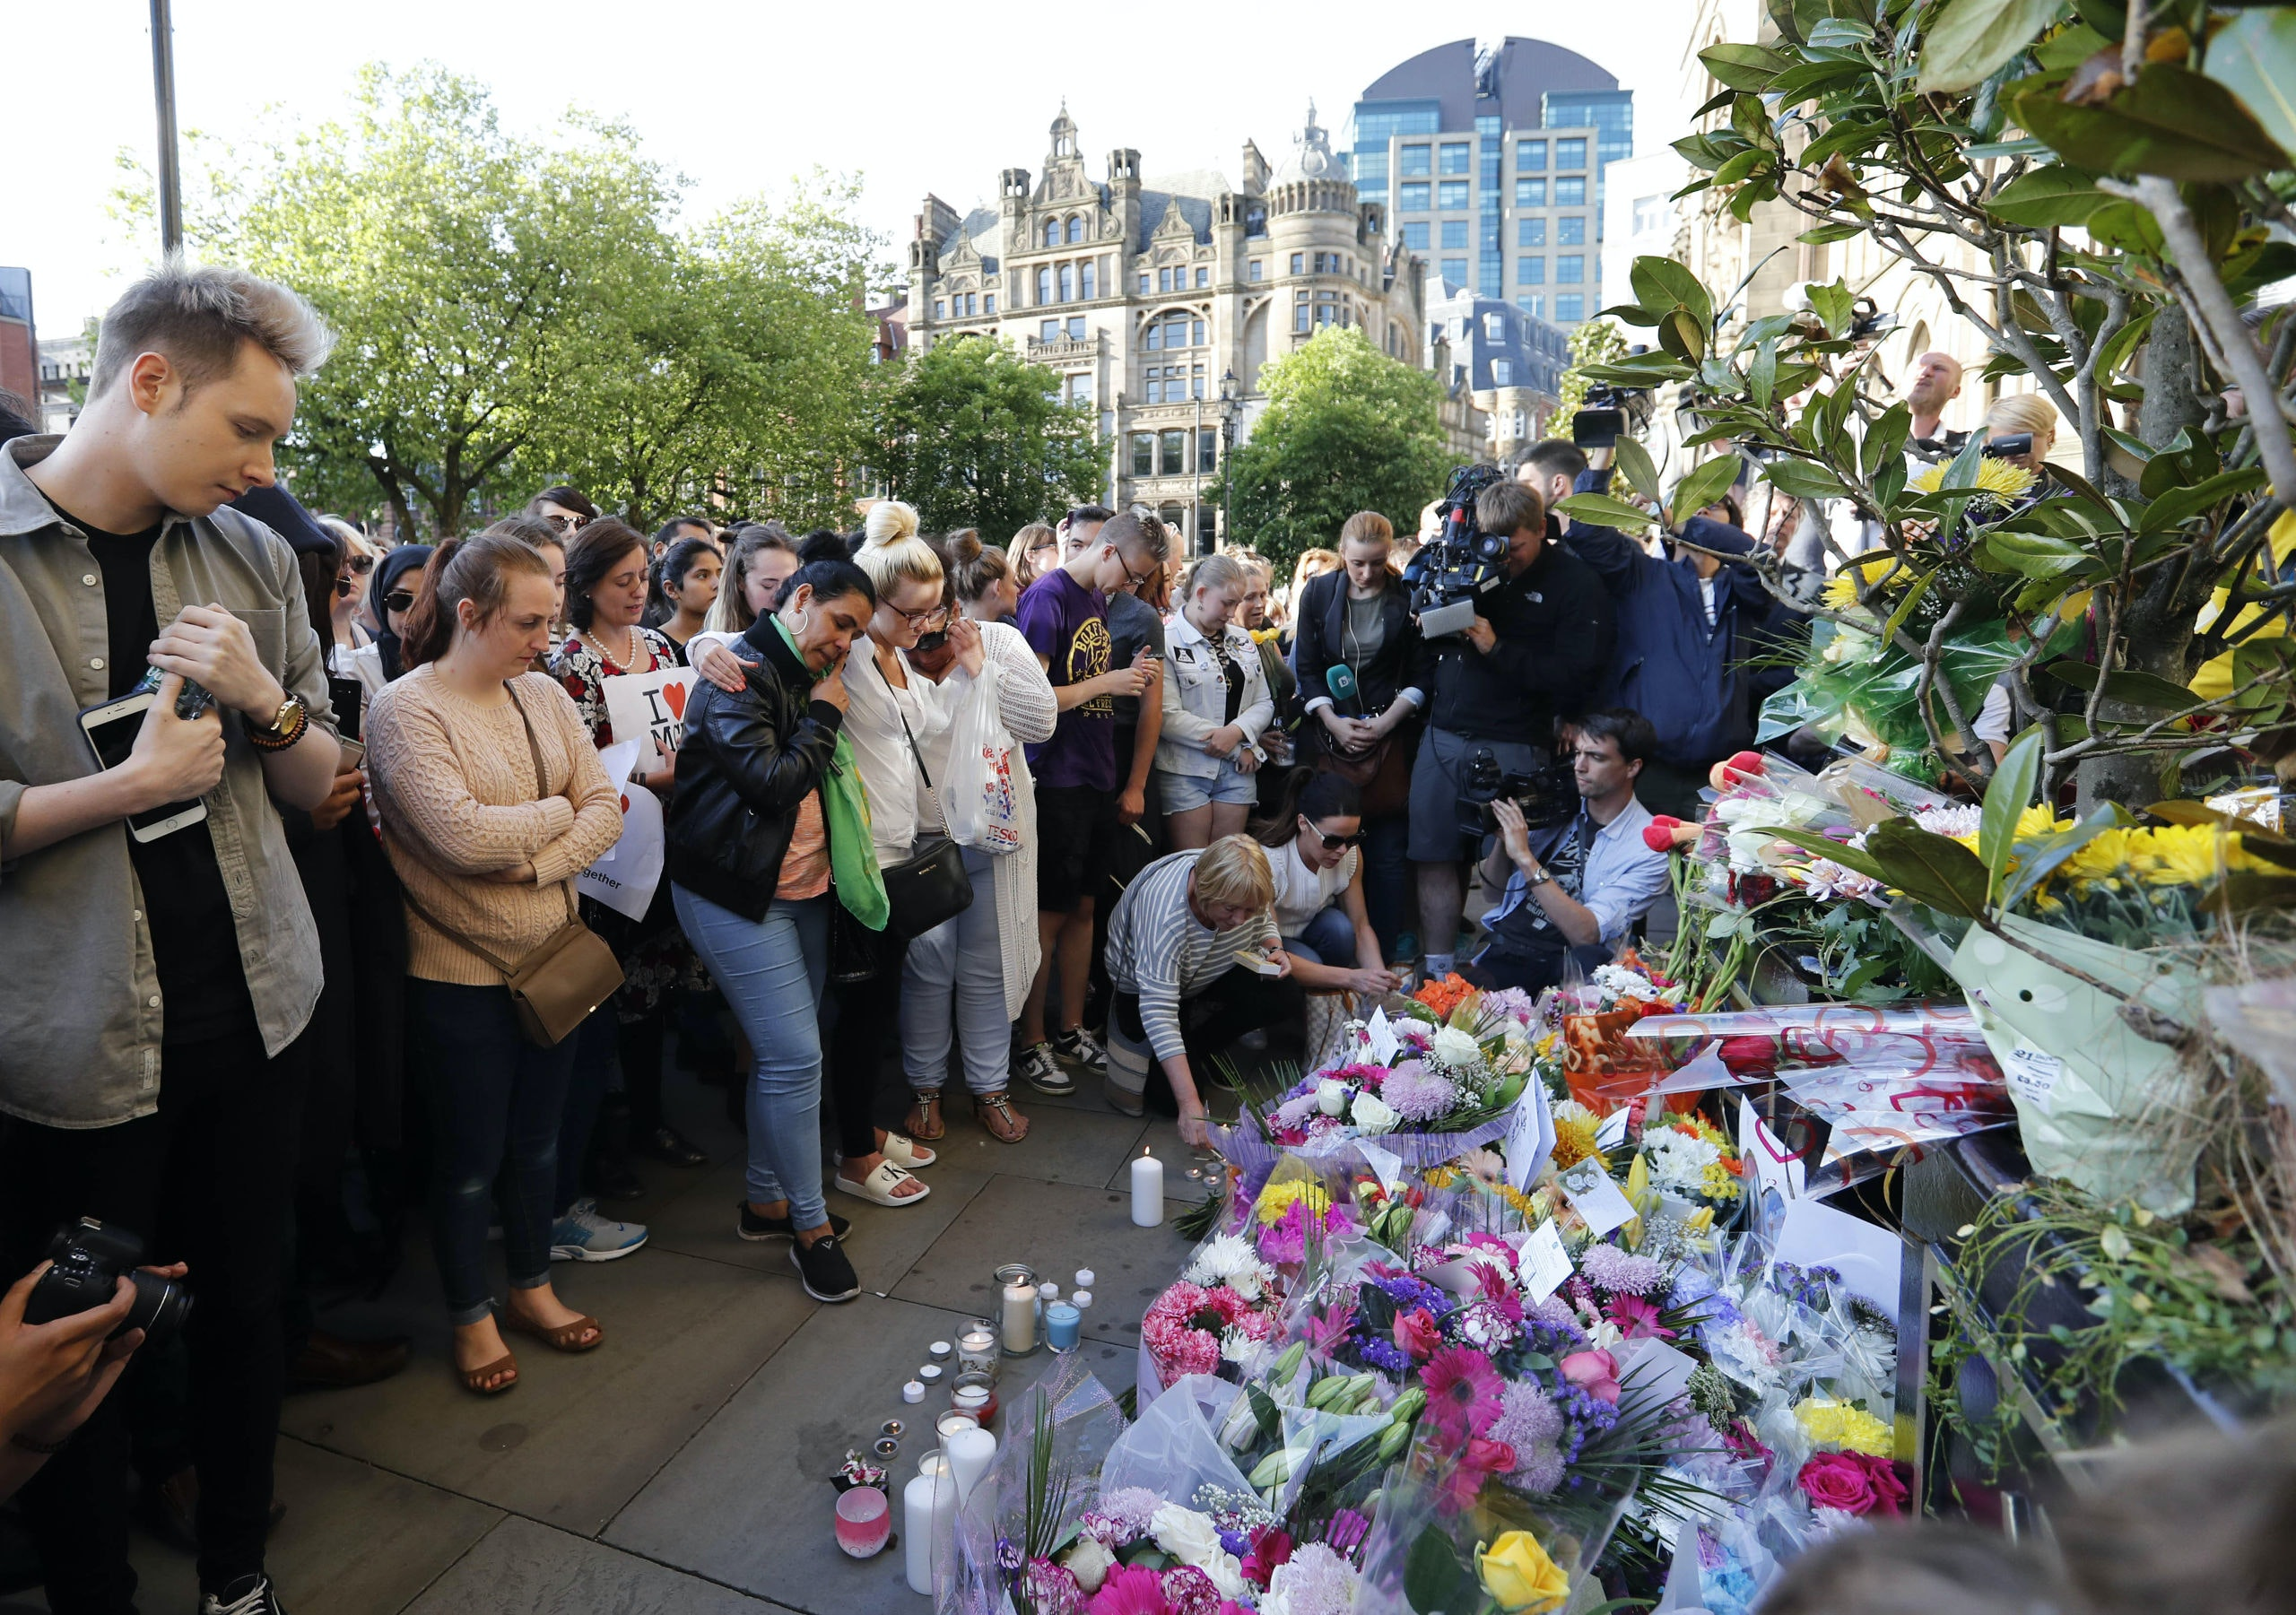 (170523) -- MANCHESTER (BRITAIN), May 23, 2017 (Xinhua) -- People attend a candlelit vigil to mourn the victims of Manchester terror attack at Albert Square in Manchester, Britain on May 23, 2017. On Monday night, a suicide terror attack took place at Manchester Arena at the end of a pop concert, killing at least 22 people, several of whom were children, while injuring 59 others. (Xinhua/Han Yan) Xinhua News Agency / eyevine  Contact eyevine for more information about using this image: T: +44 (0) 20 8709 8709 E: info@eyevine.com http://www.eyevine.com